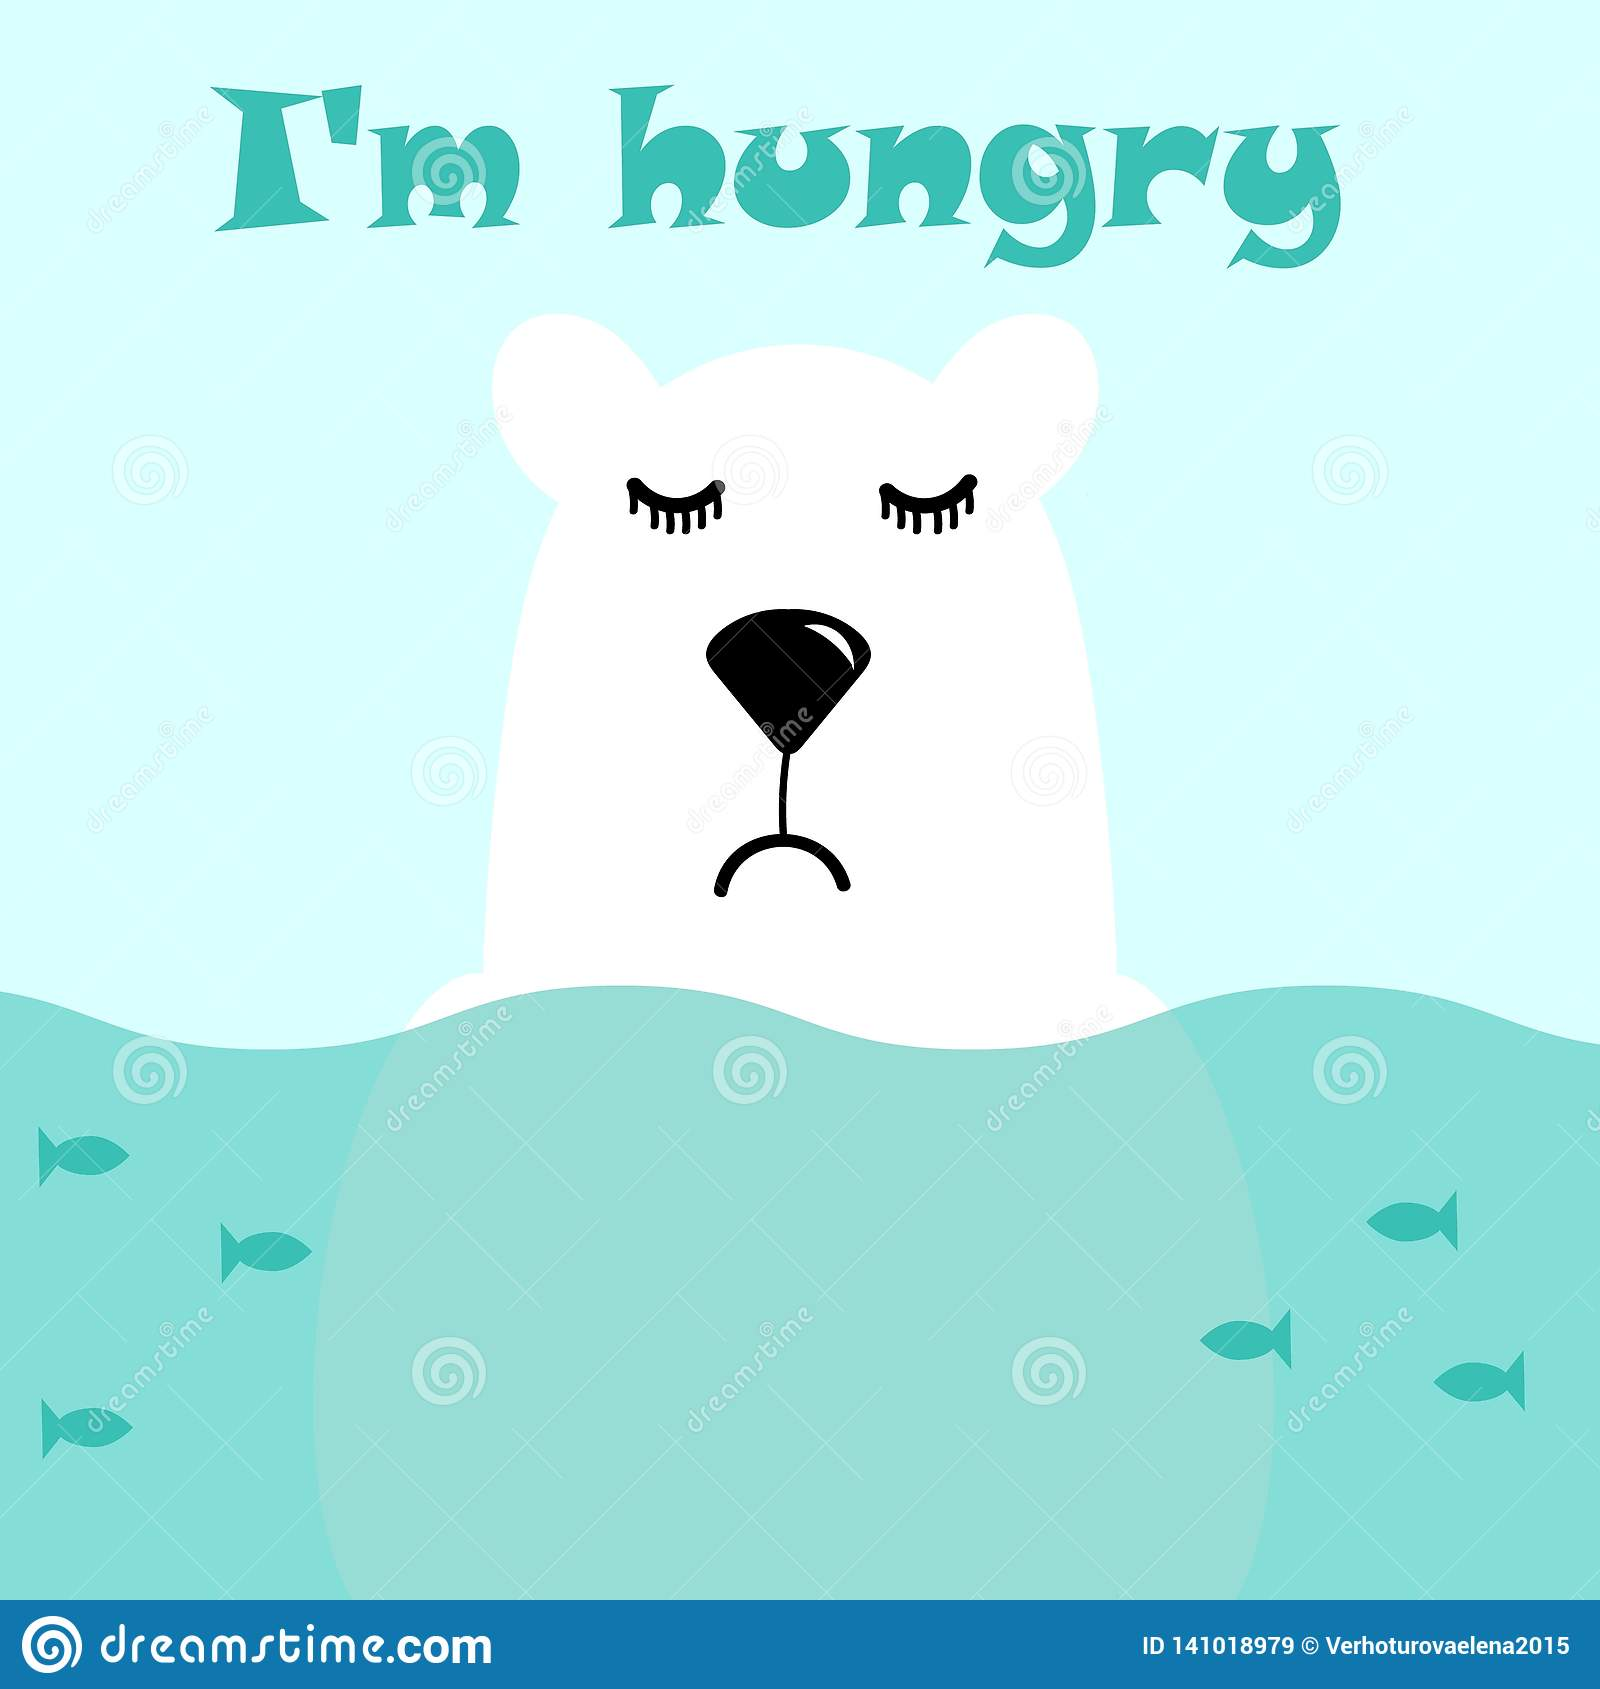 Cute white polar bear is standing in the water, fish are swimming around him, he is sad and hungry. Vector illustration and